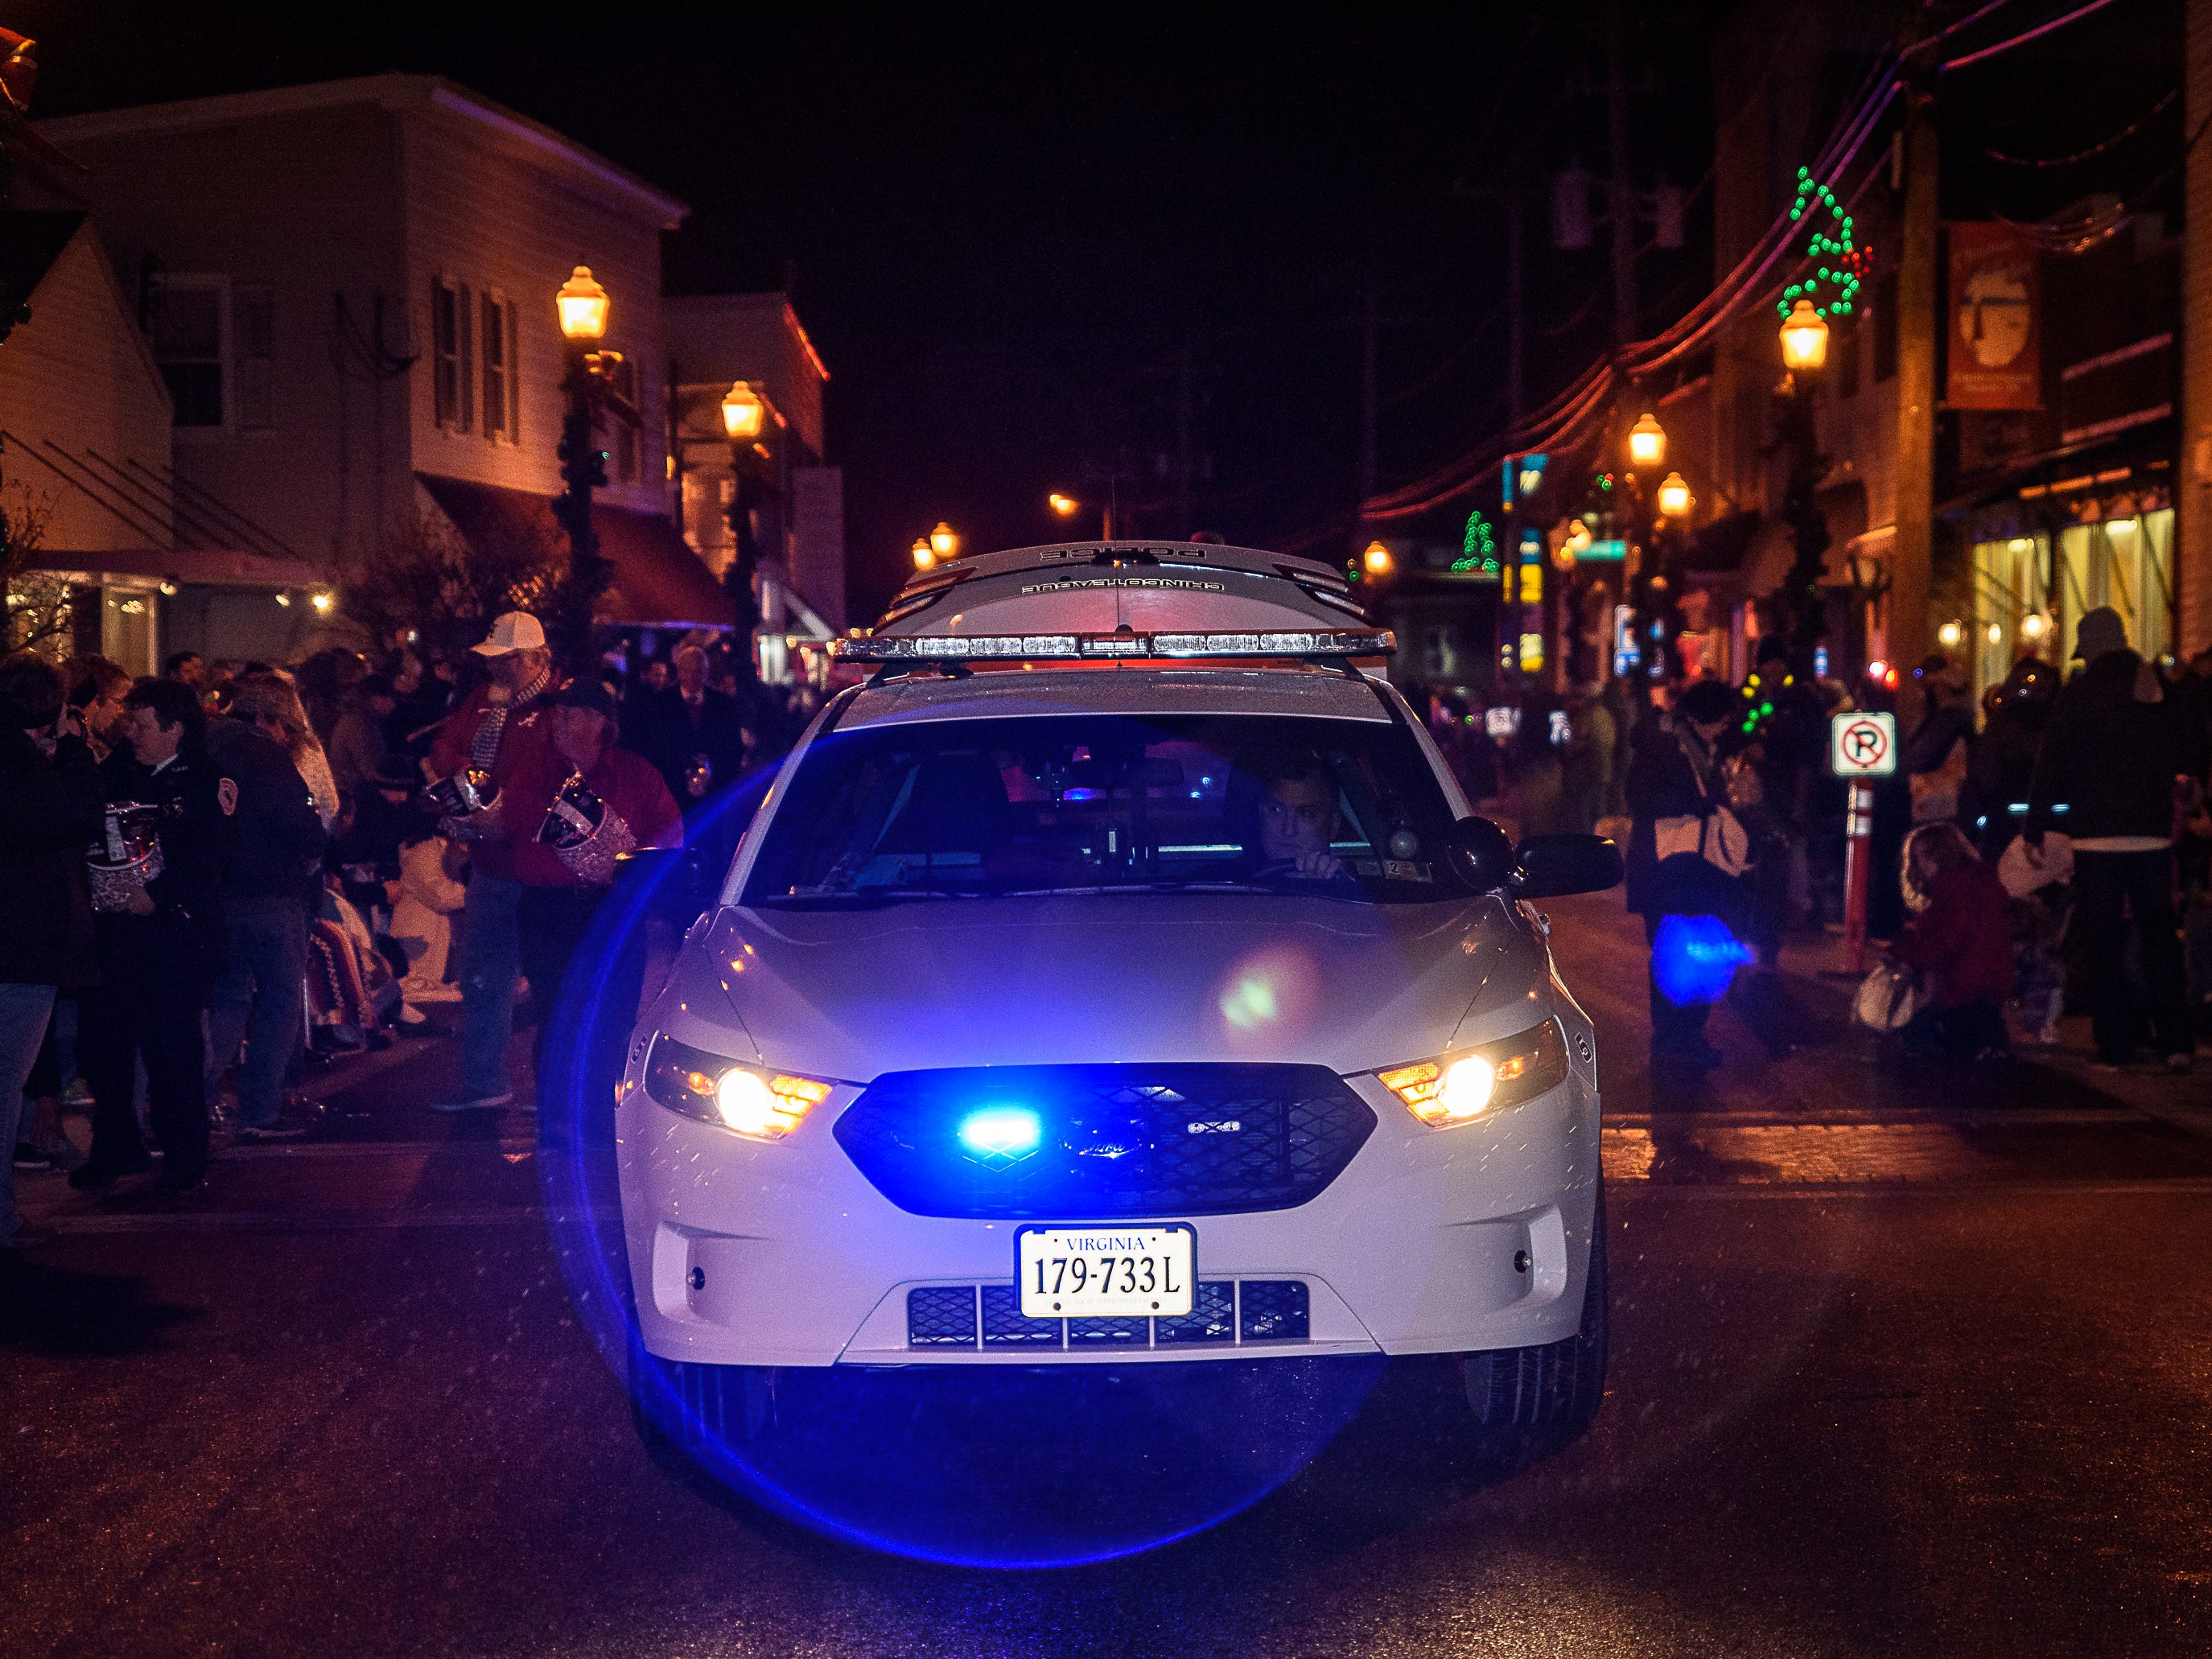 A Chincoteague Police Department car leads the annual Christmas parade on Dec. 1.